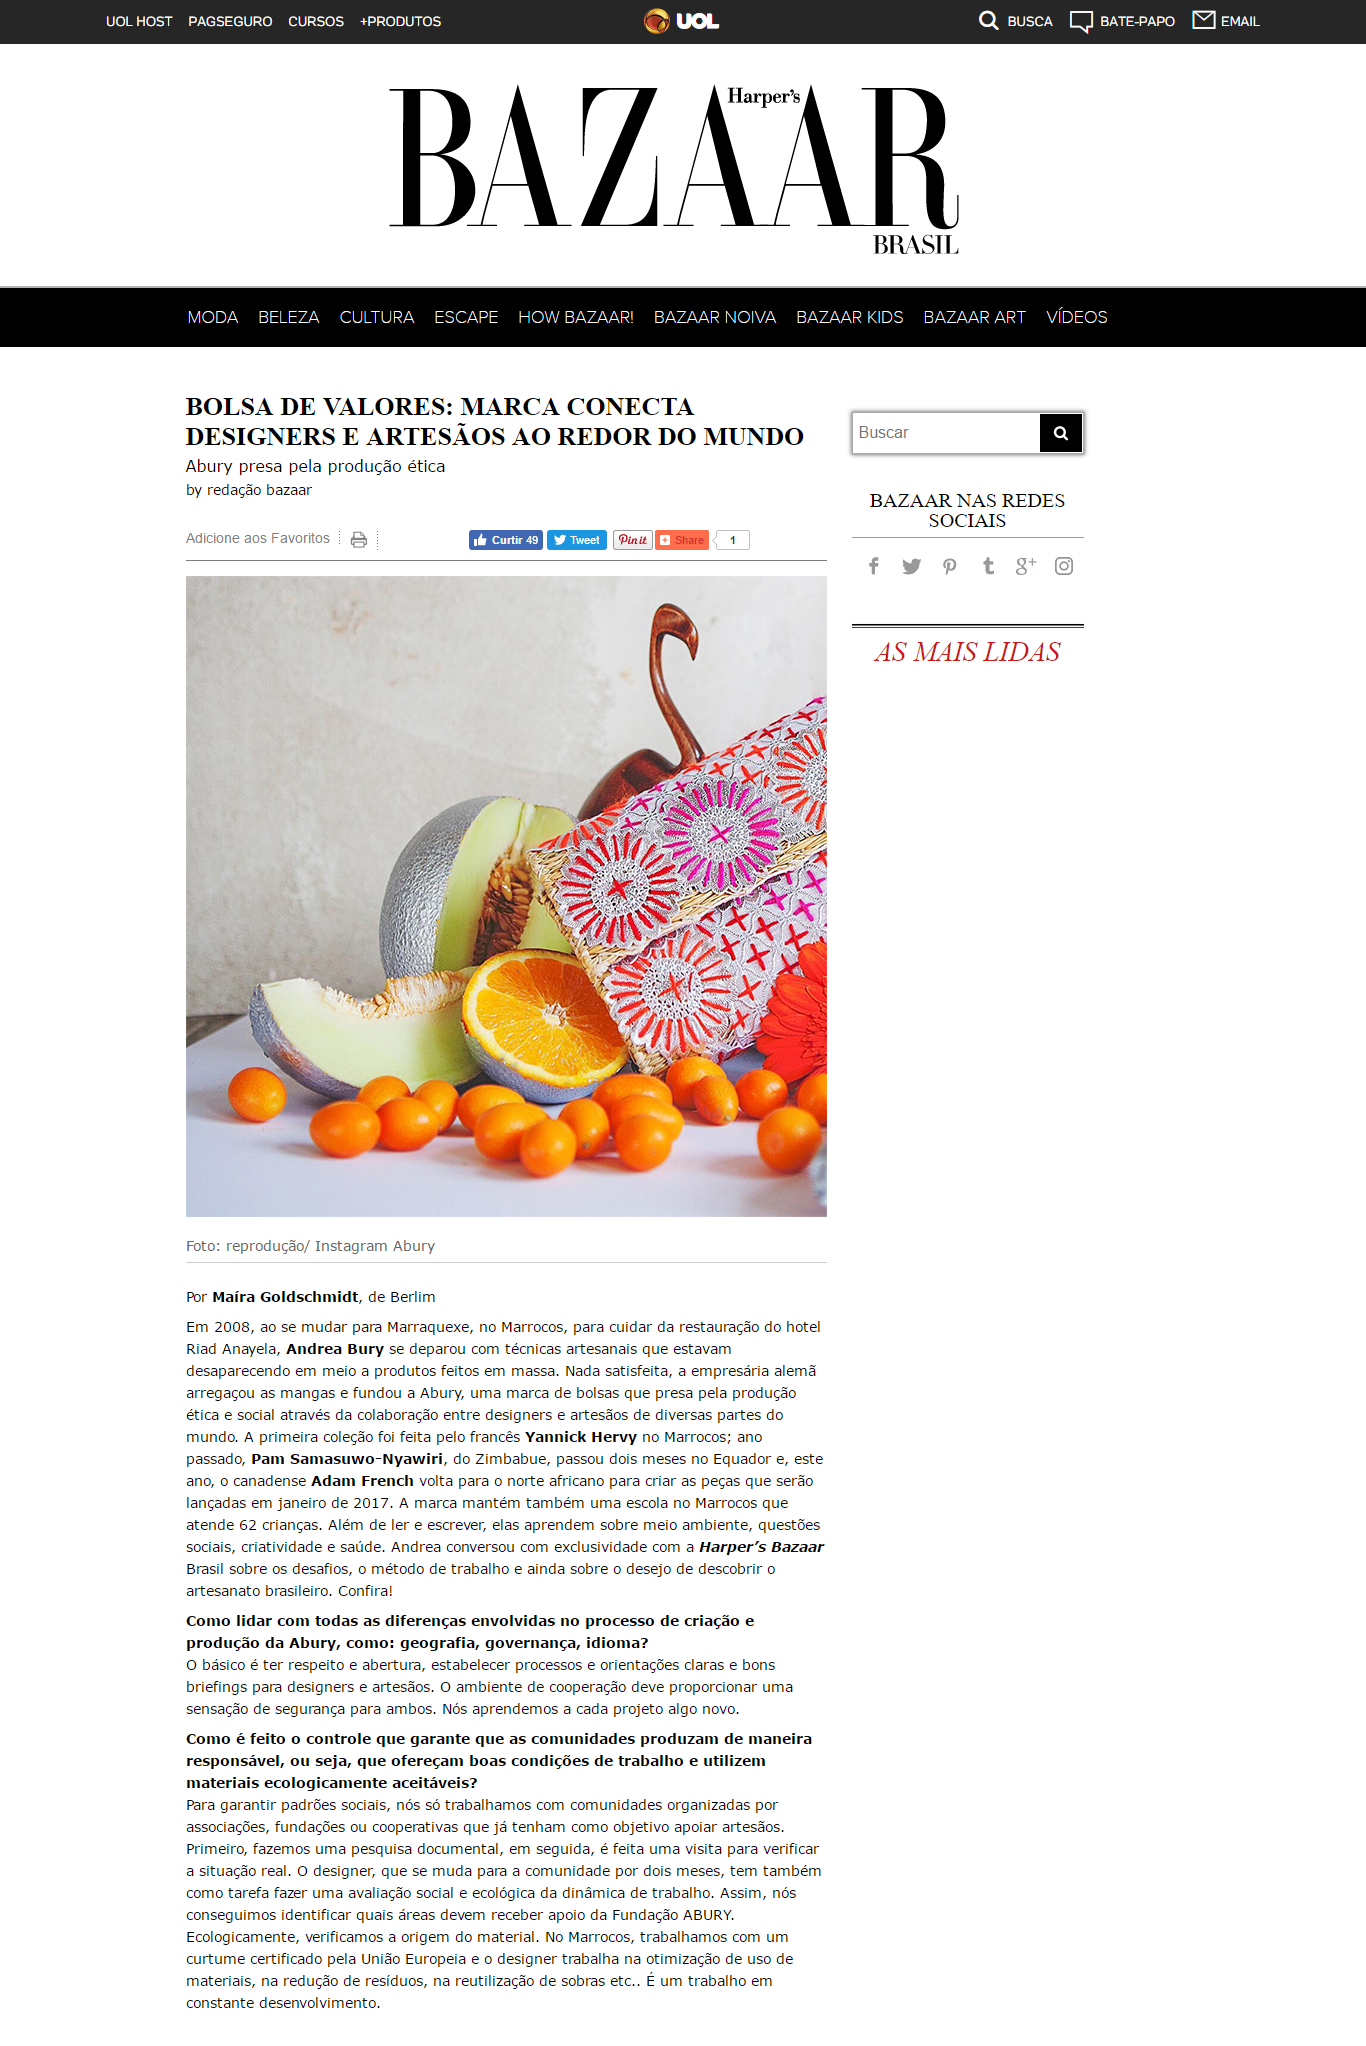 ABURY featured in Harper's Bazaar Brasil Blog